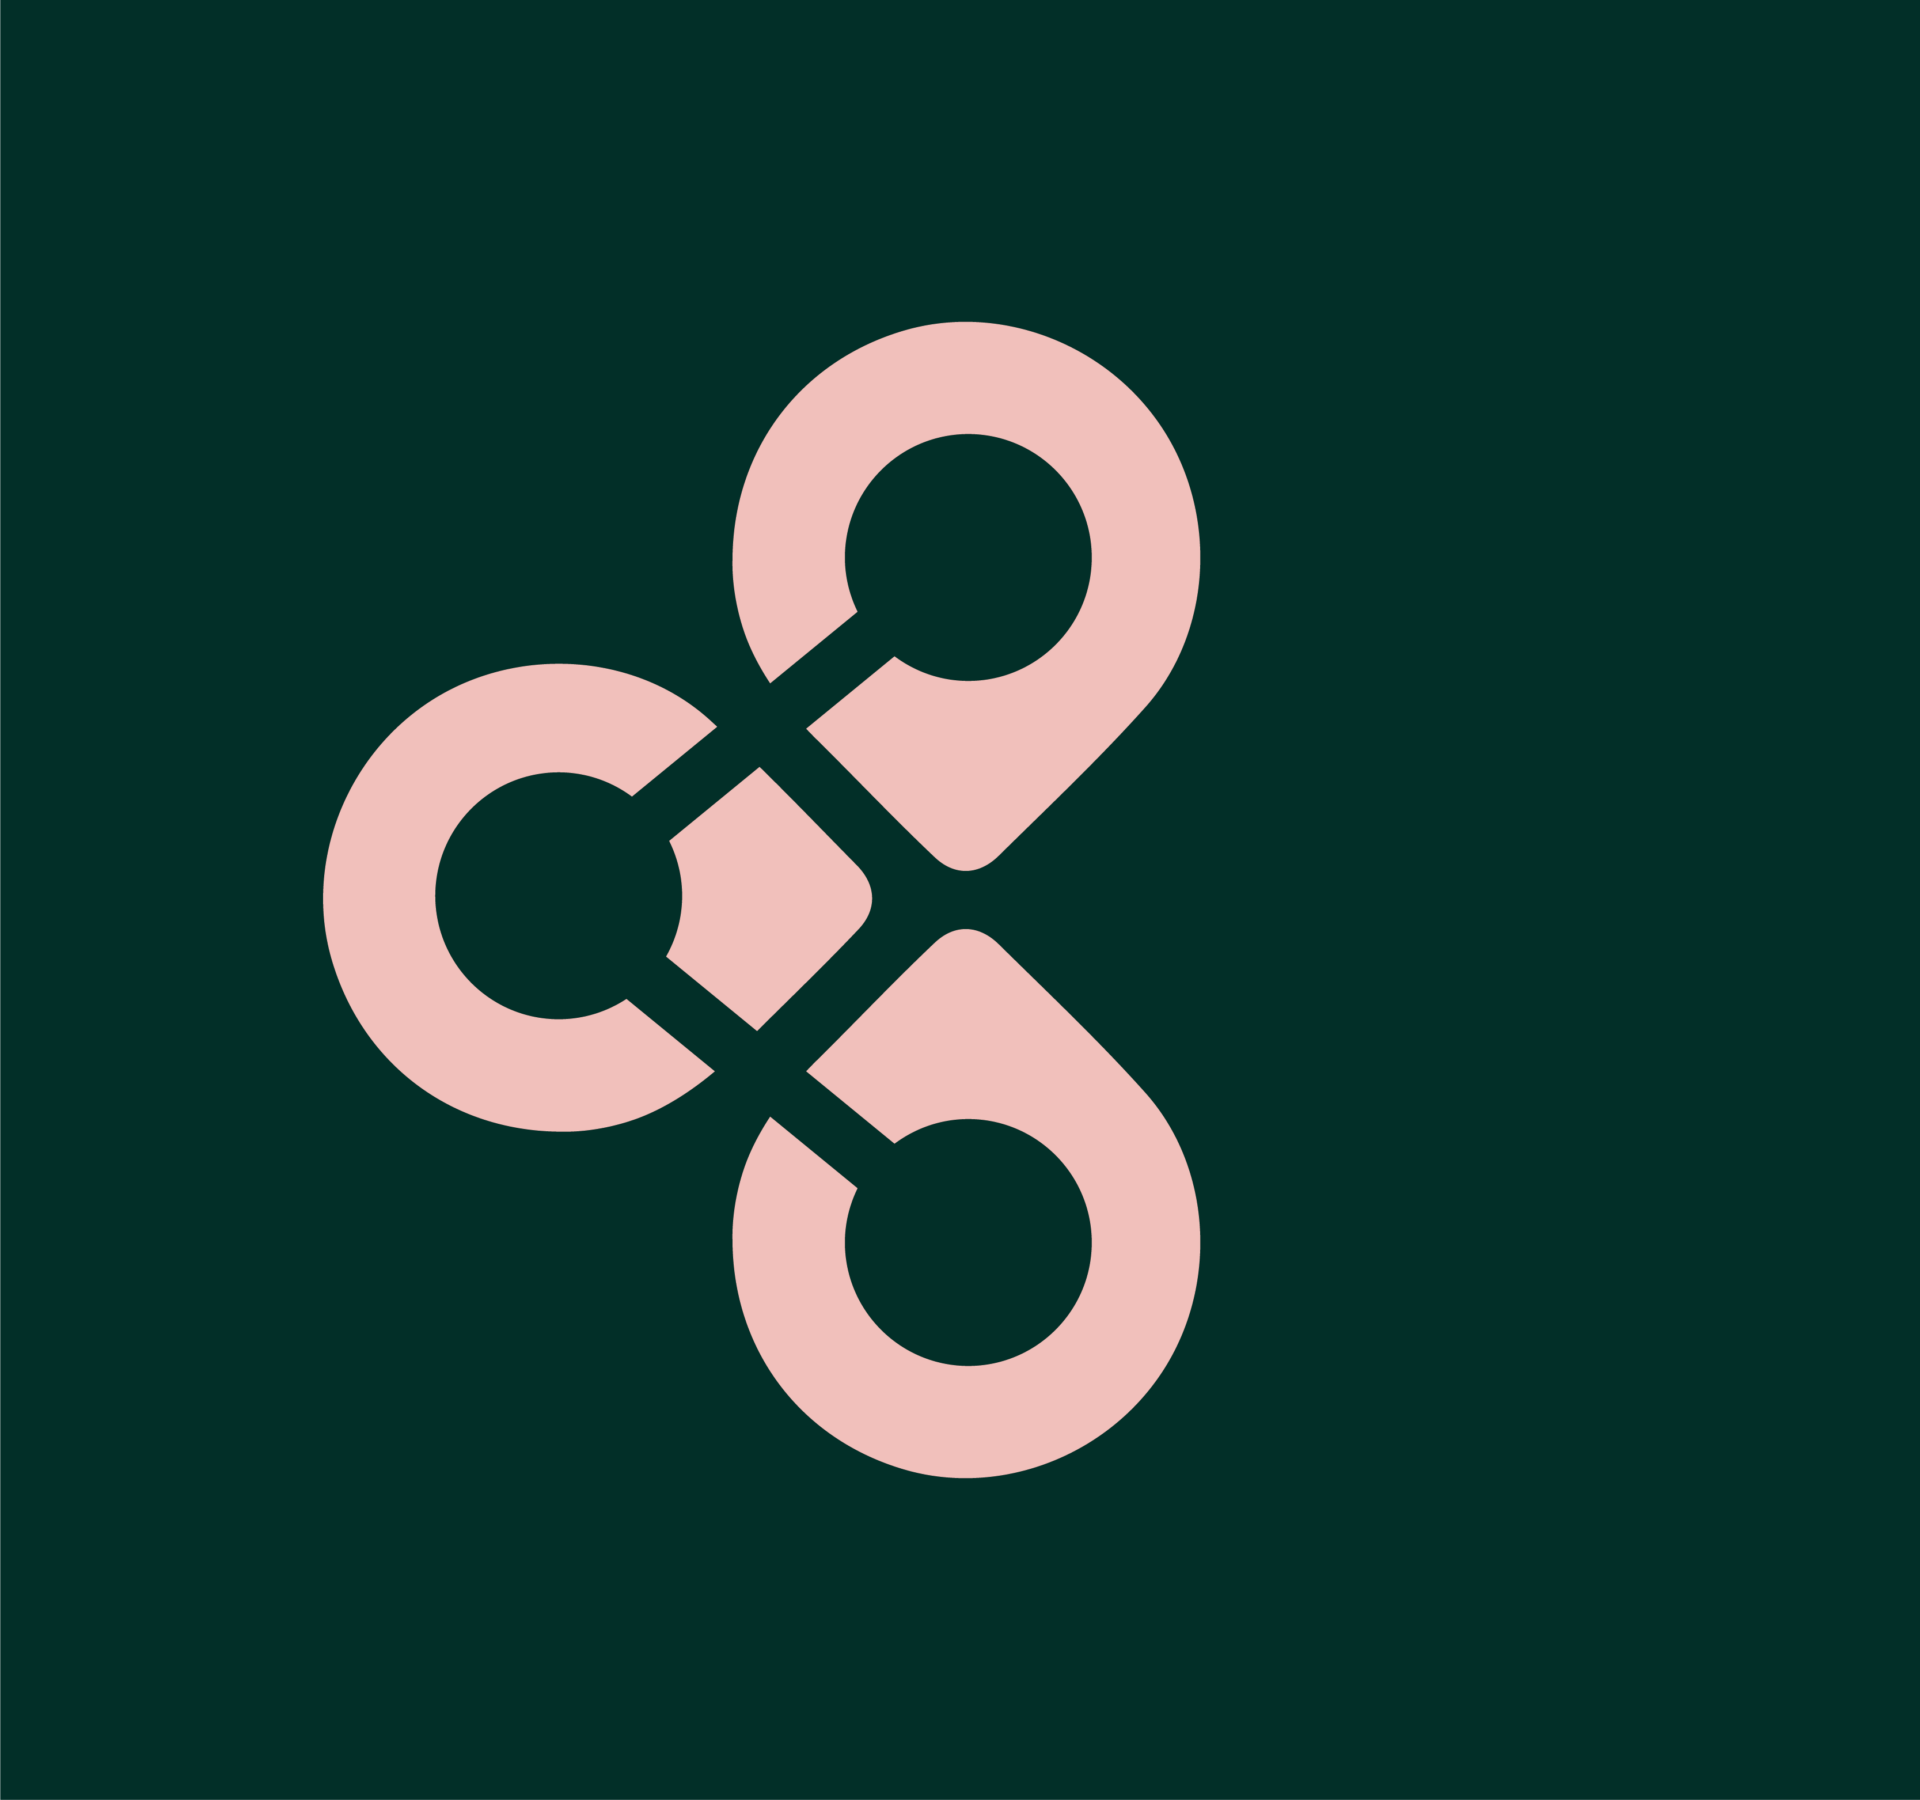 pink place icon logo on green background for the company now and then